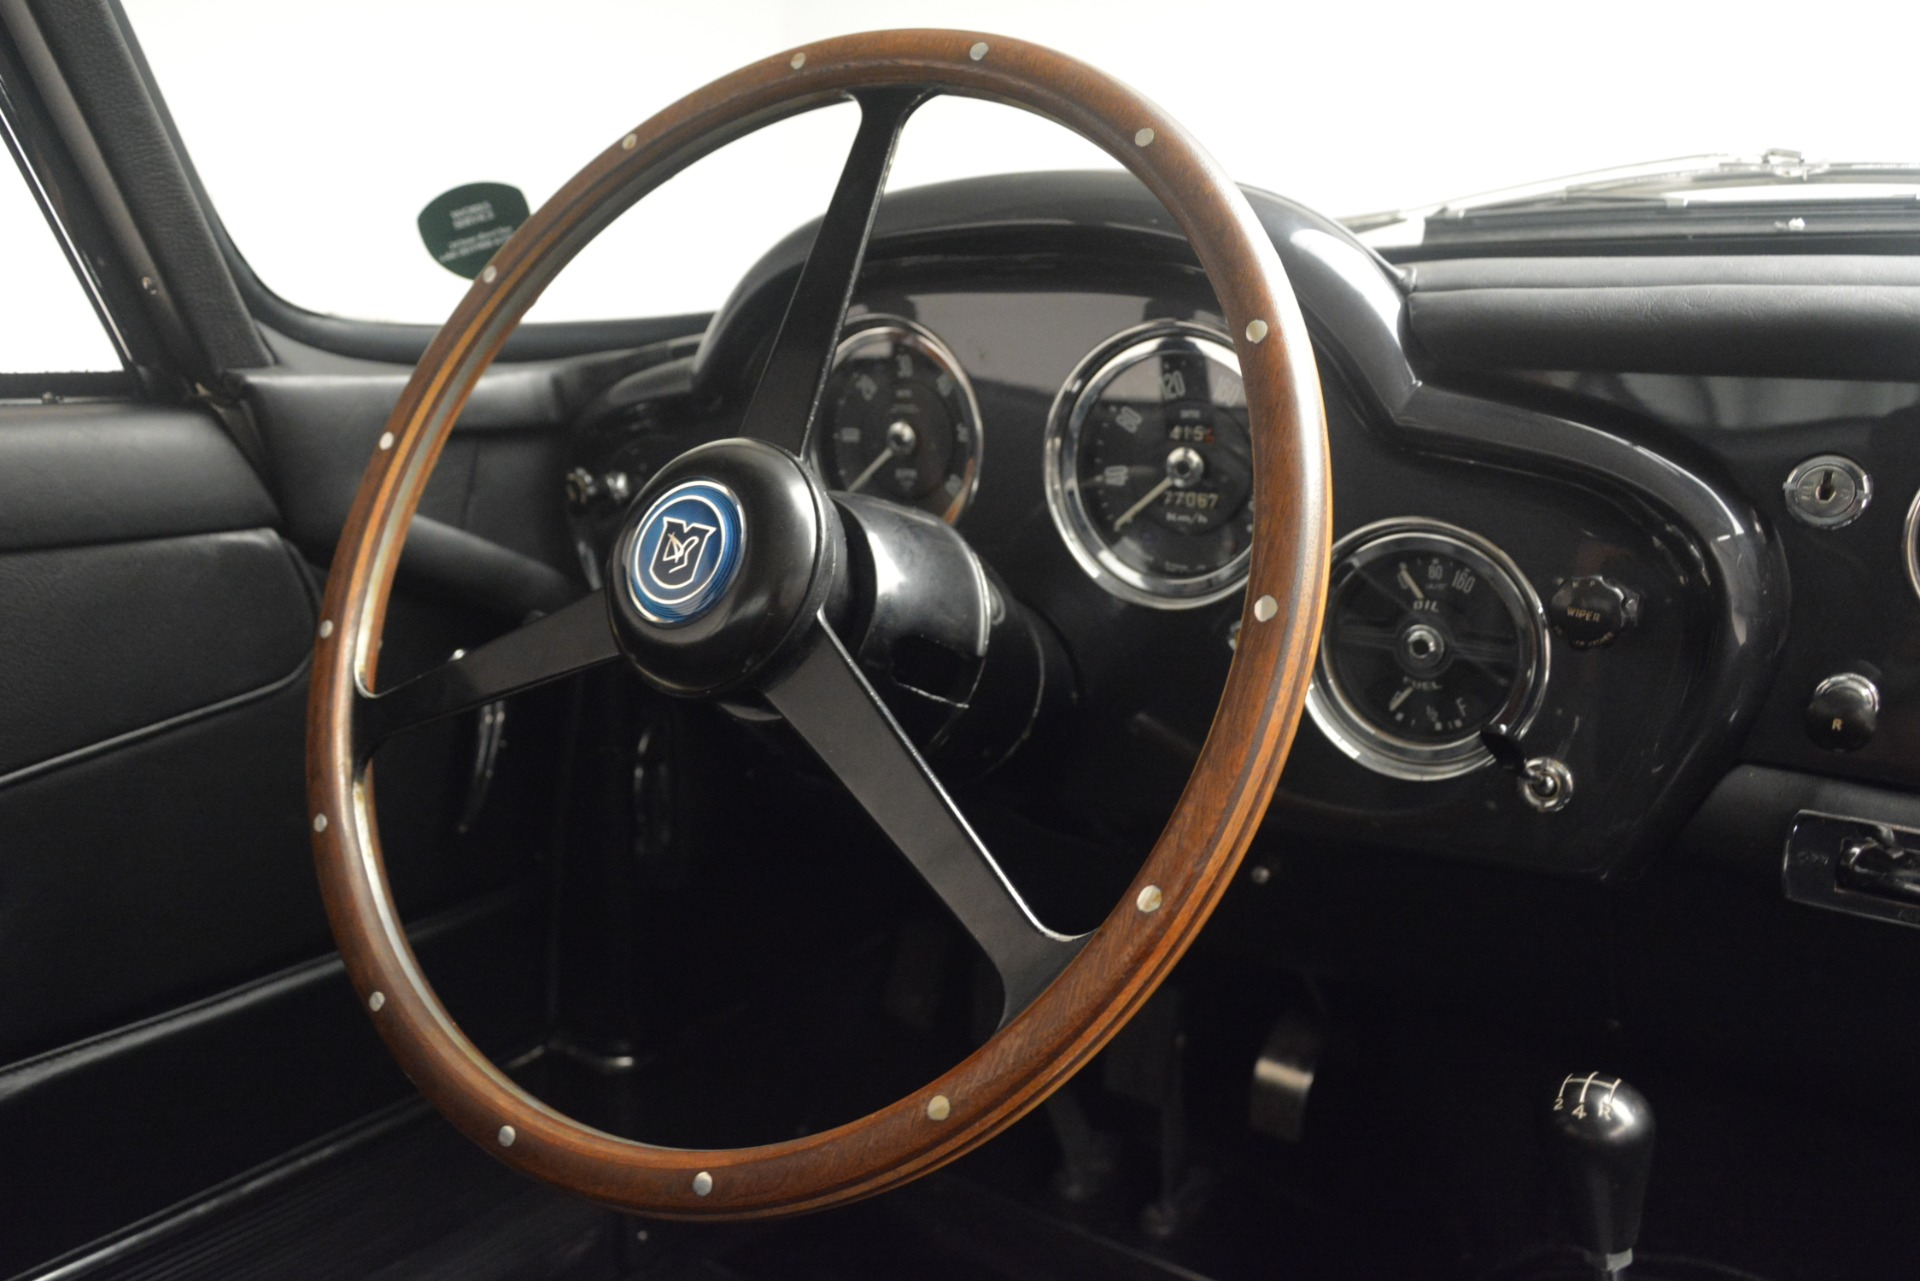 Used 1961 Aston Martin DB4 Series IV Coupe For Sale In Westport, CT 3186_p27